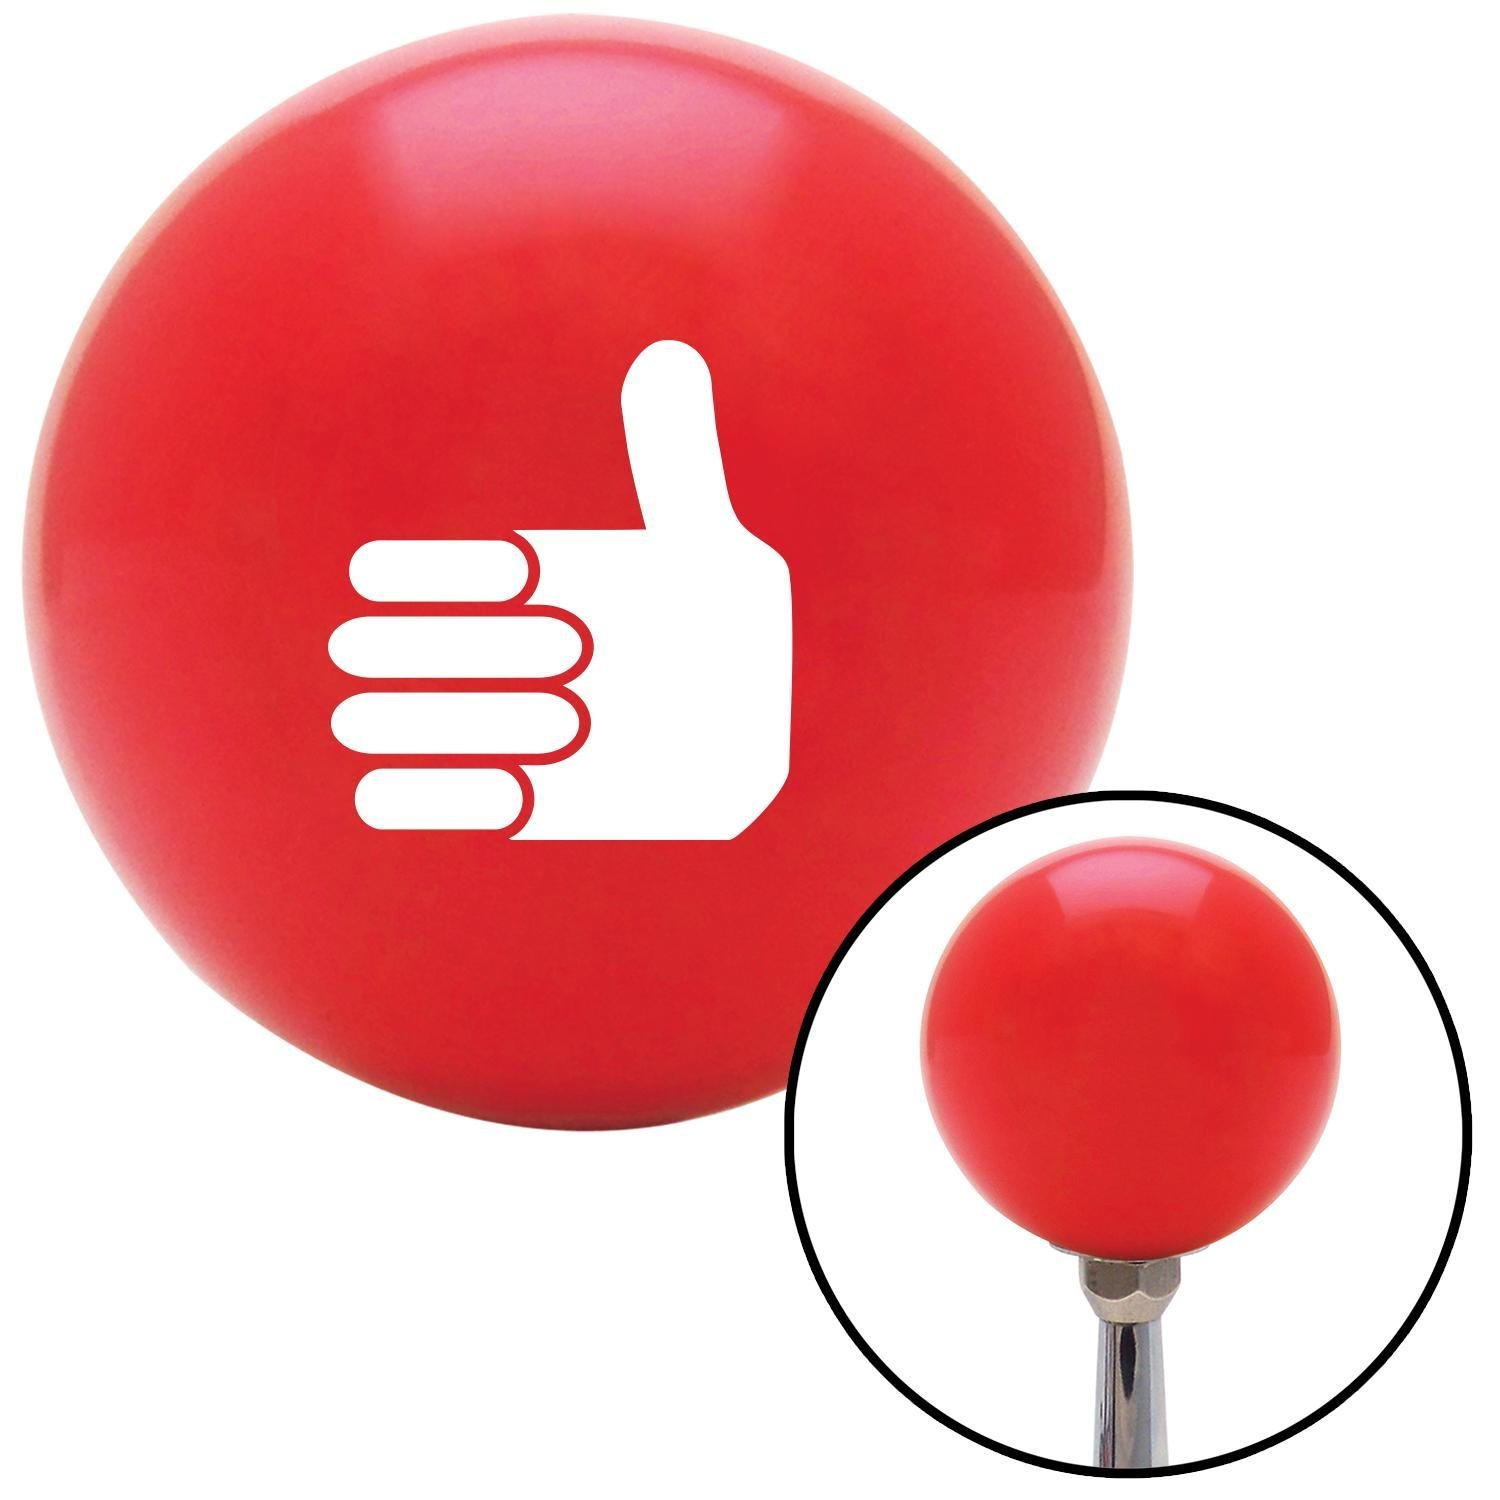 American Shifter 95480 Red Shift Knob with M16 x 1.5 Insert White Thumbs Up